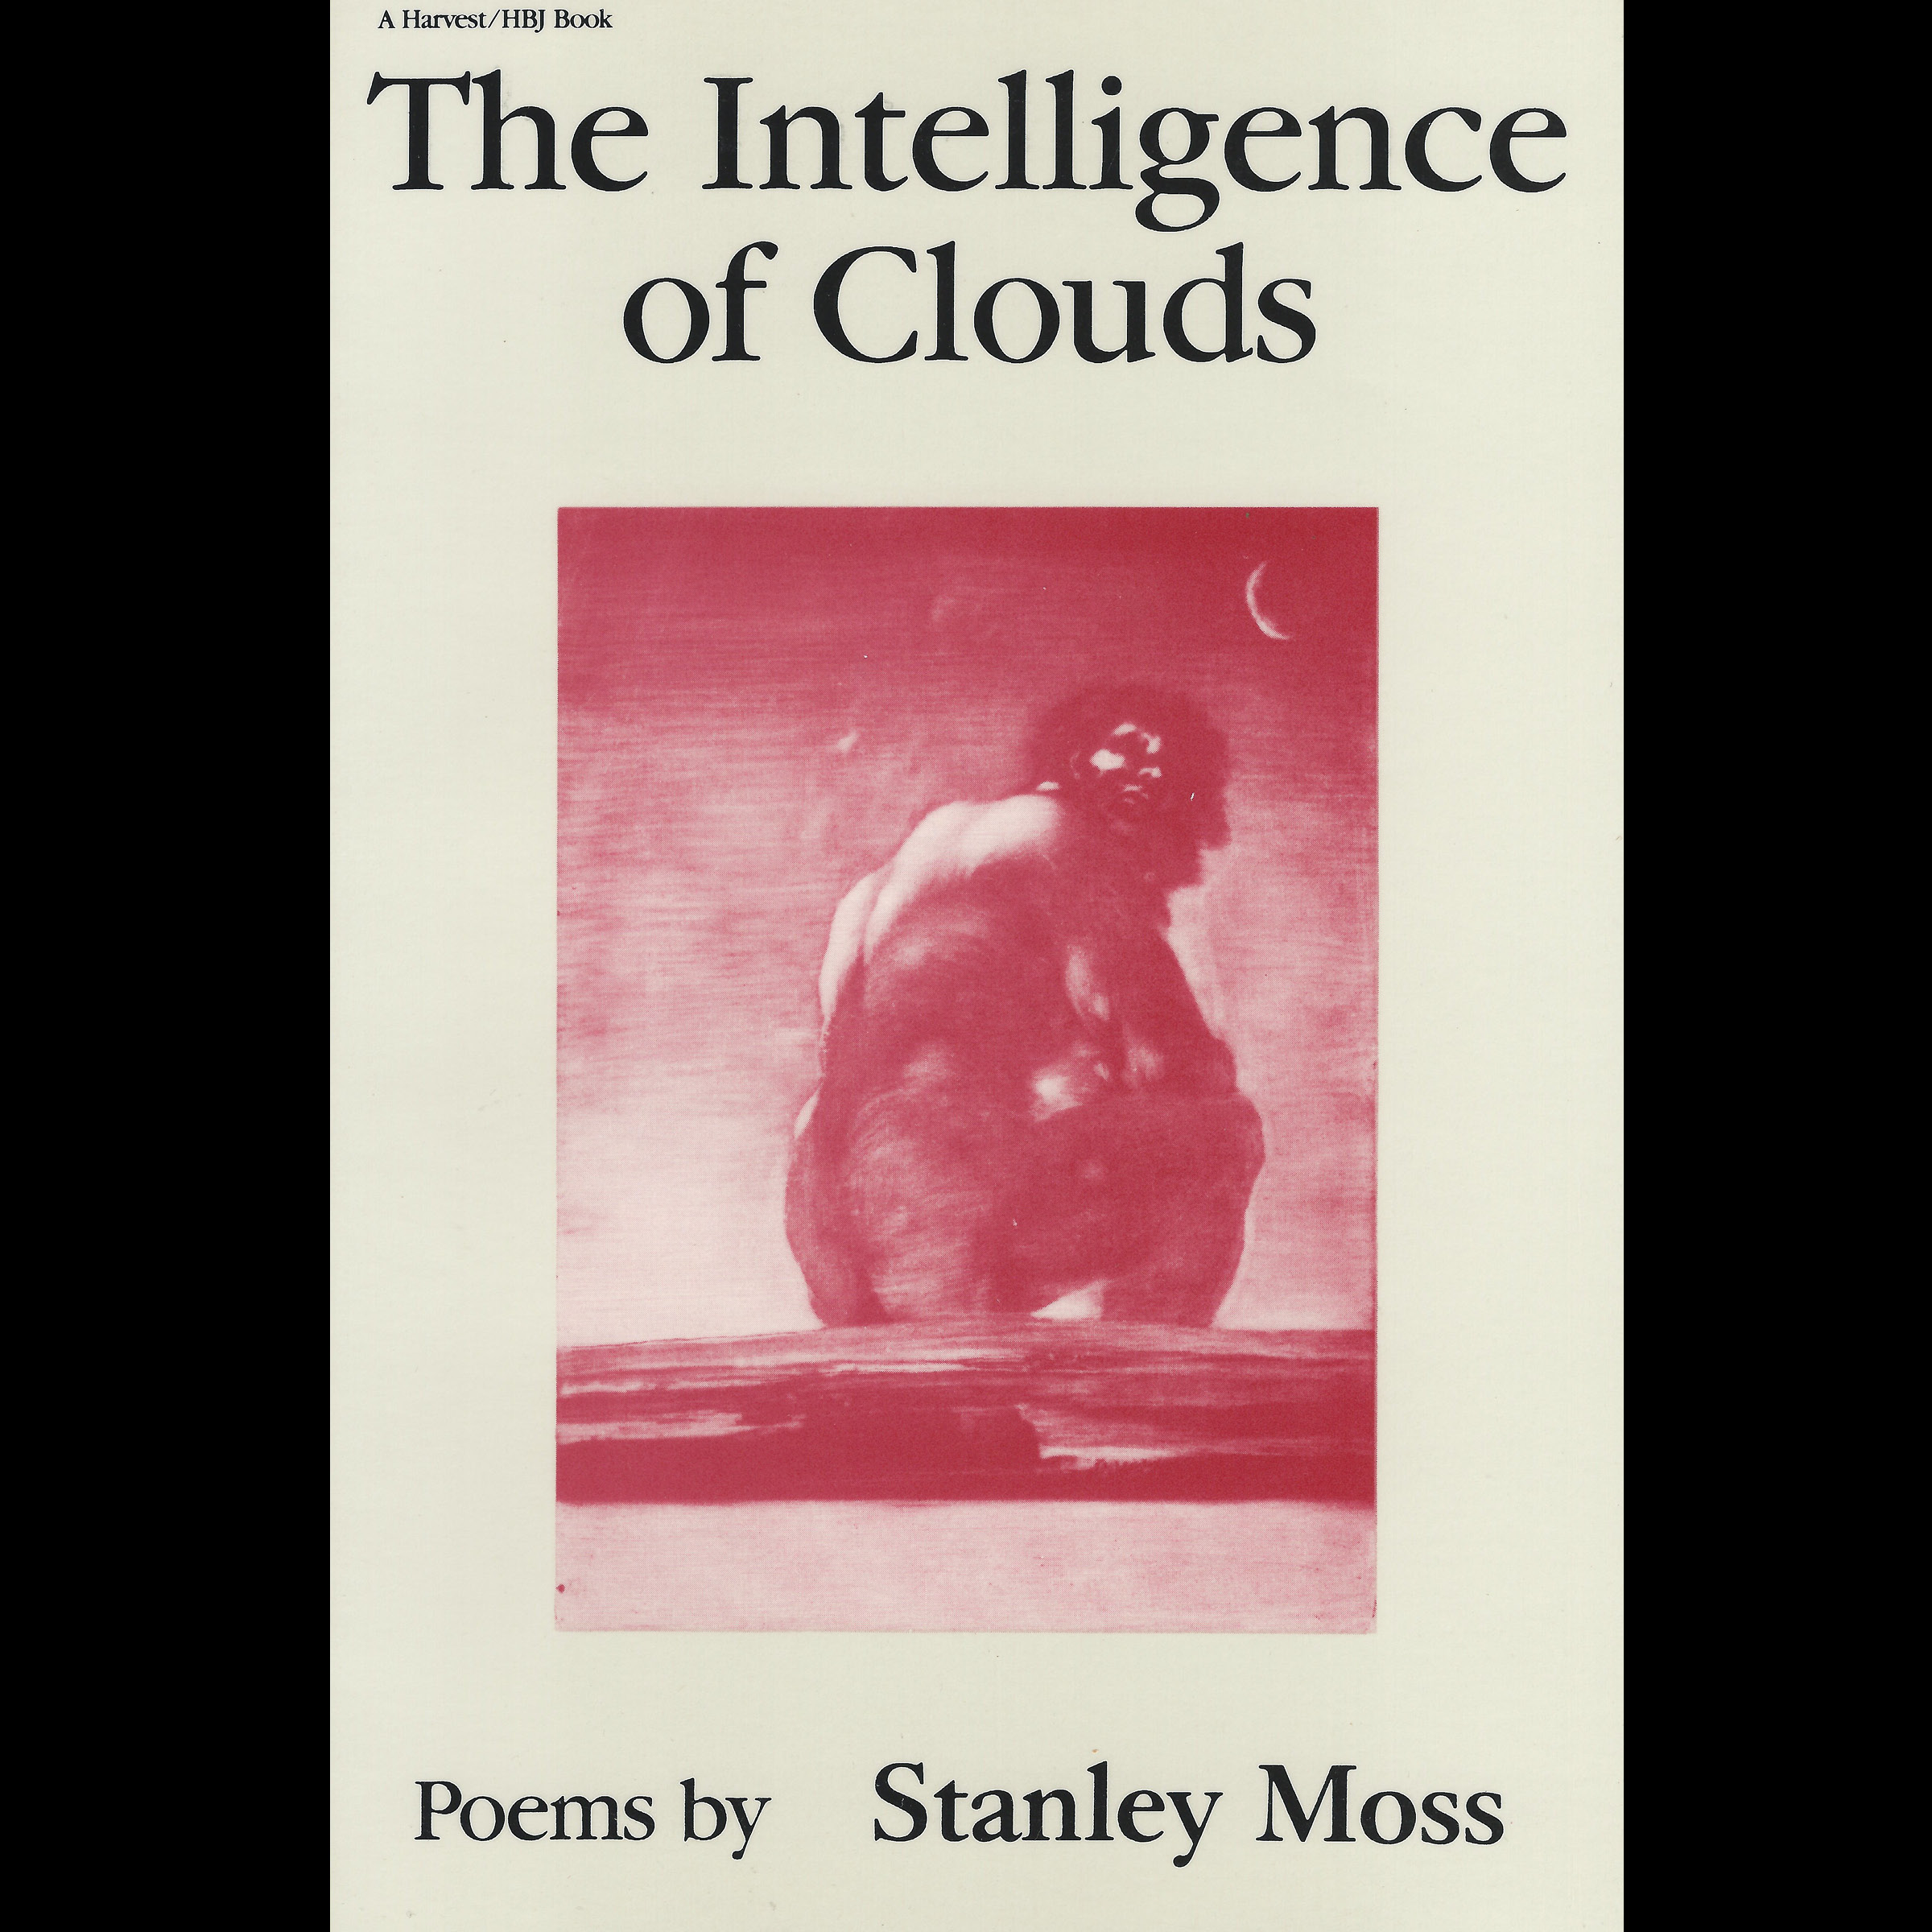 The Intelligence of Clouds (Anvil Press, 1989)